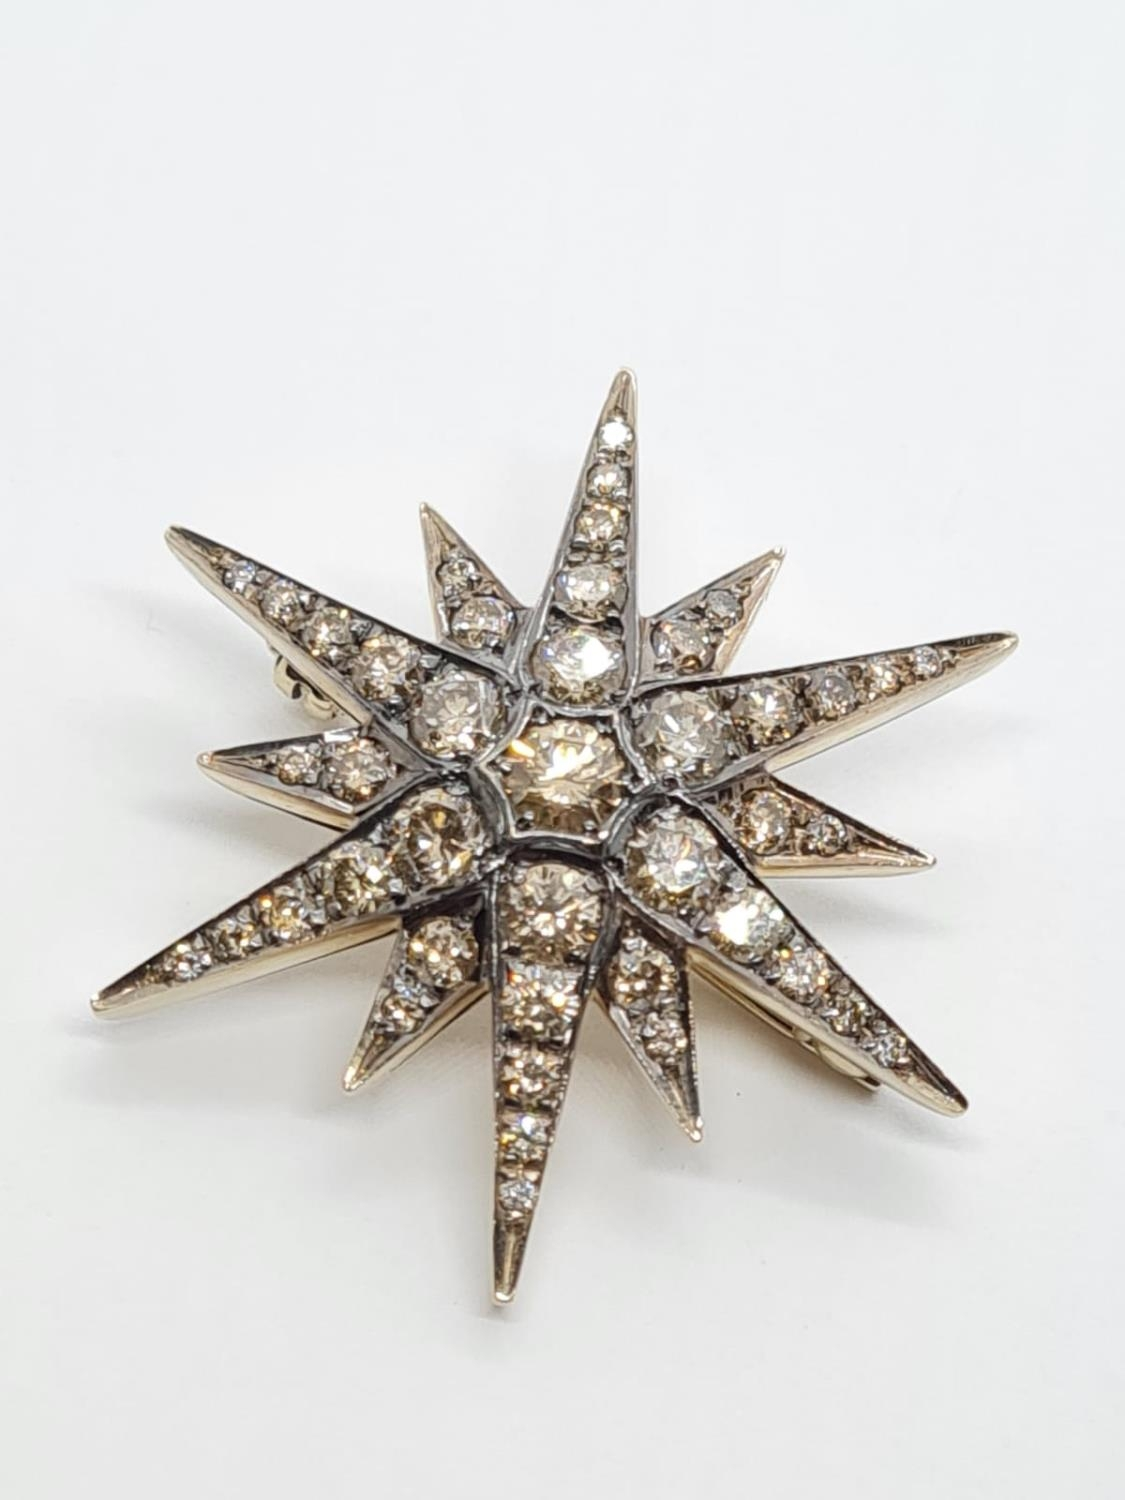 Vintage 18ct Gold Star Brooch with 3 ct of Diamonds. Weight 8.2g 3.5 cm.